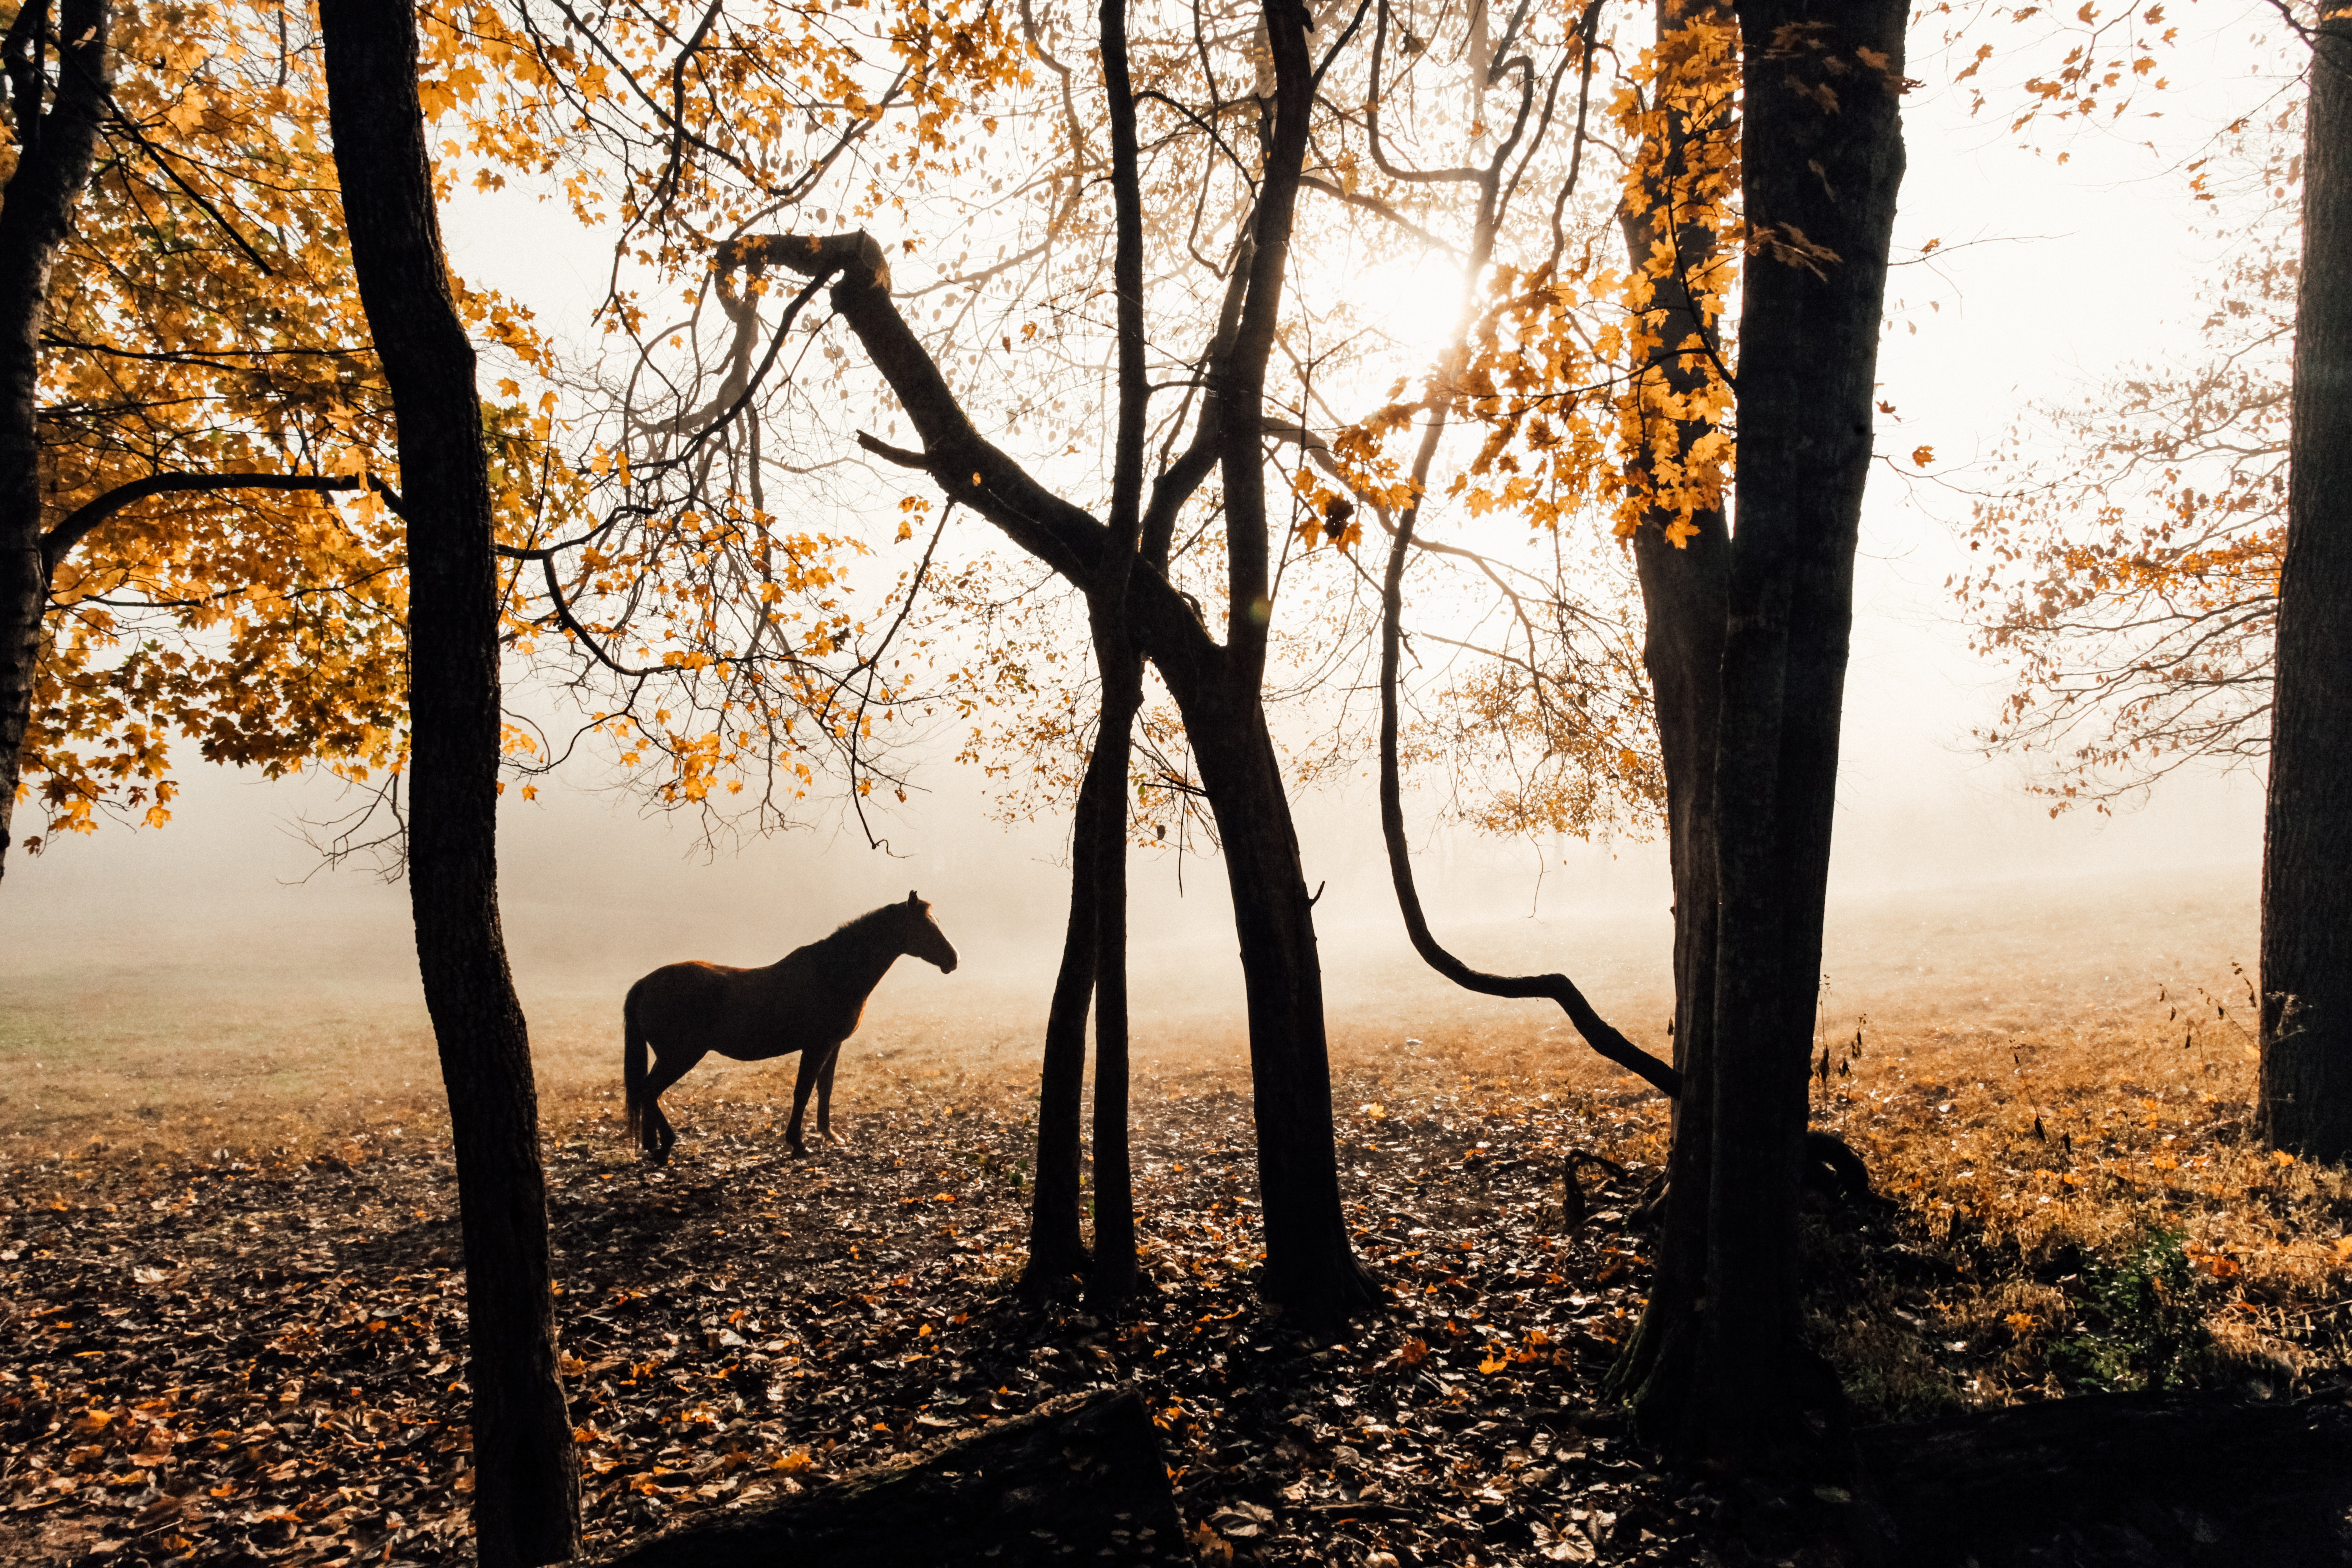 horse sunlight forest photography 1574938203 - Horse Sunlight Forest Photography -